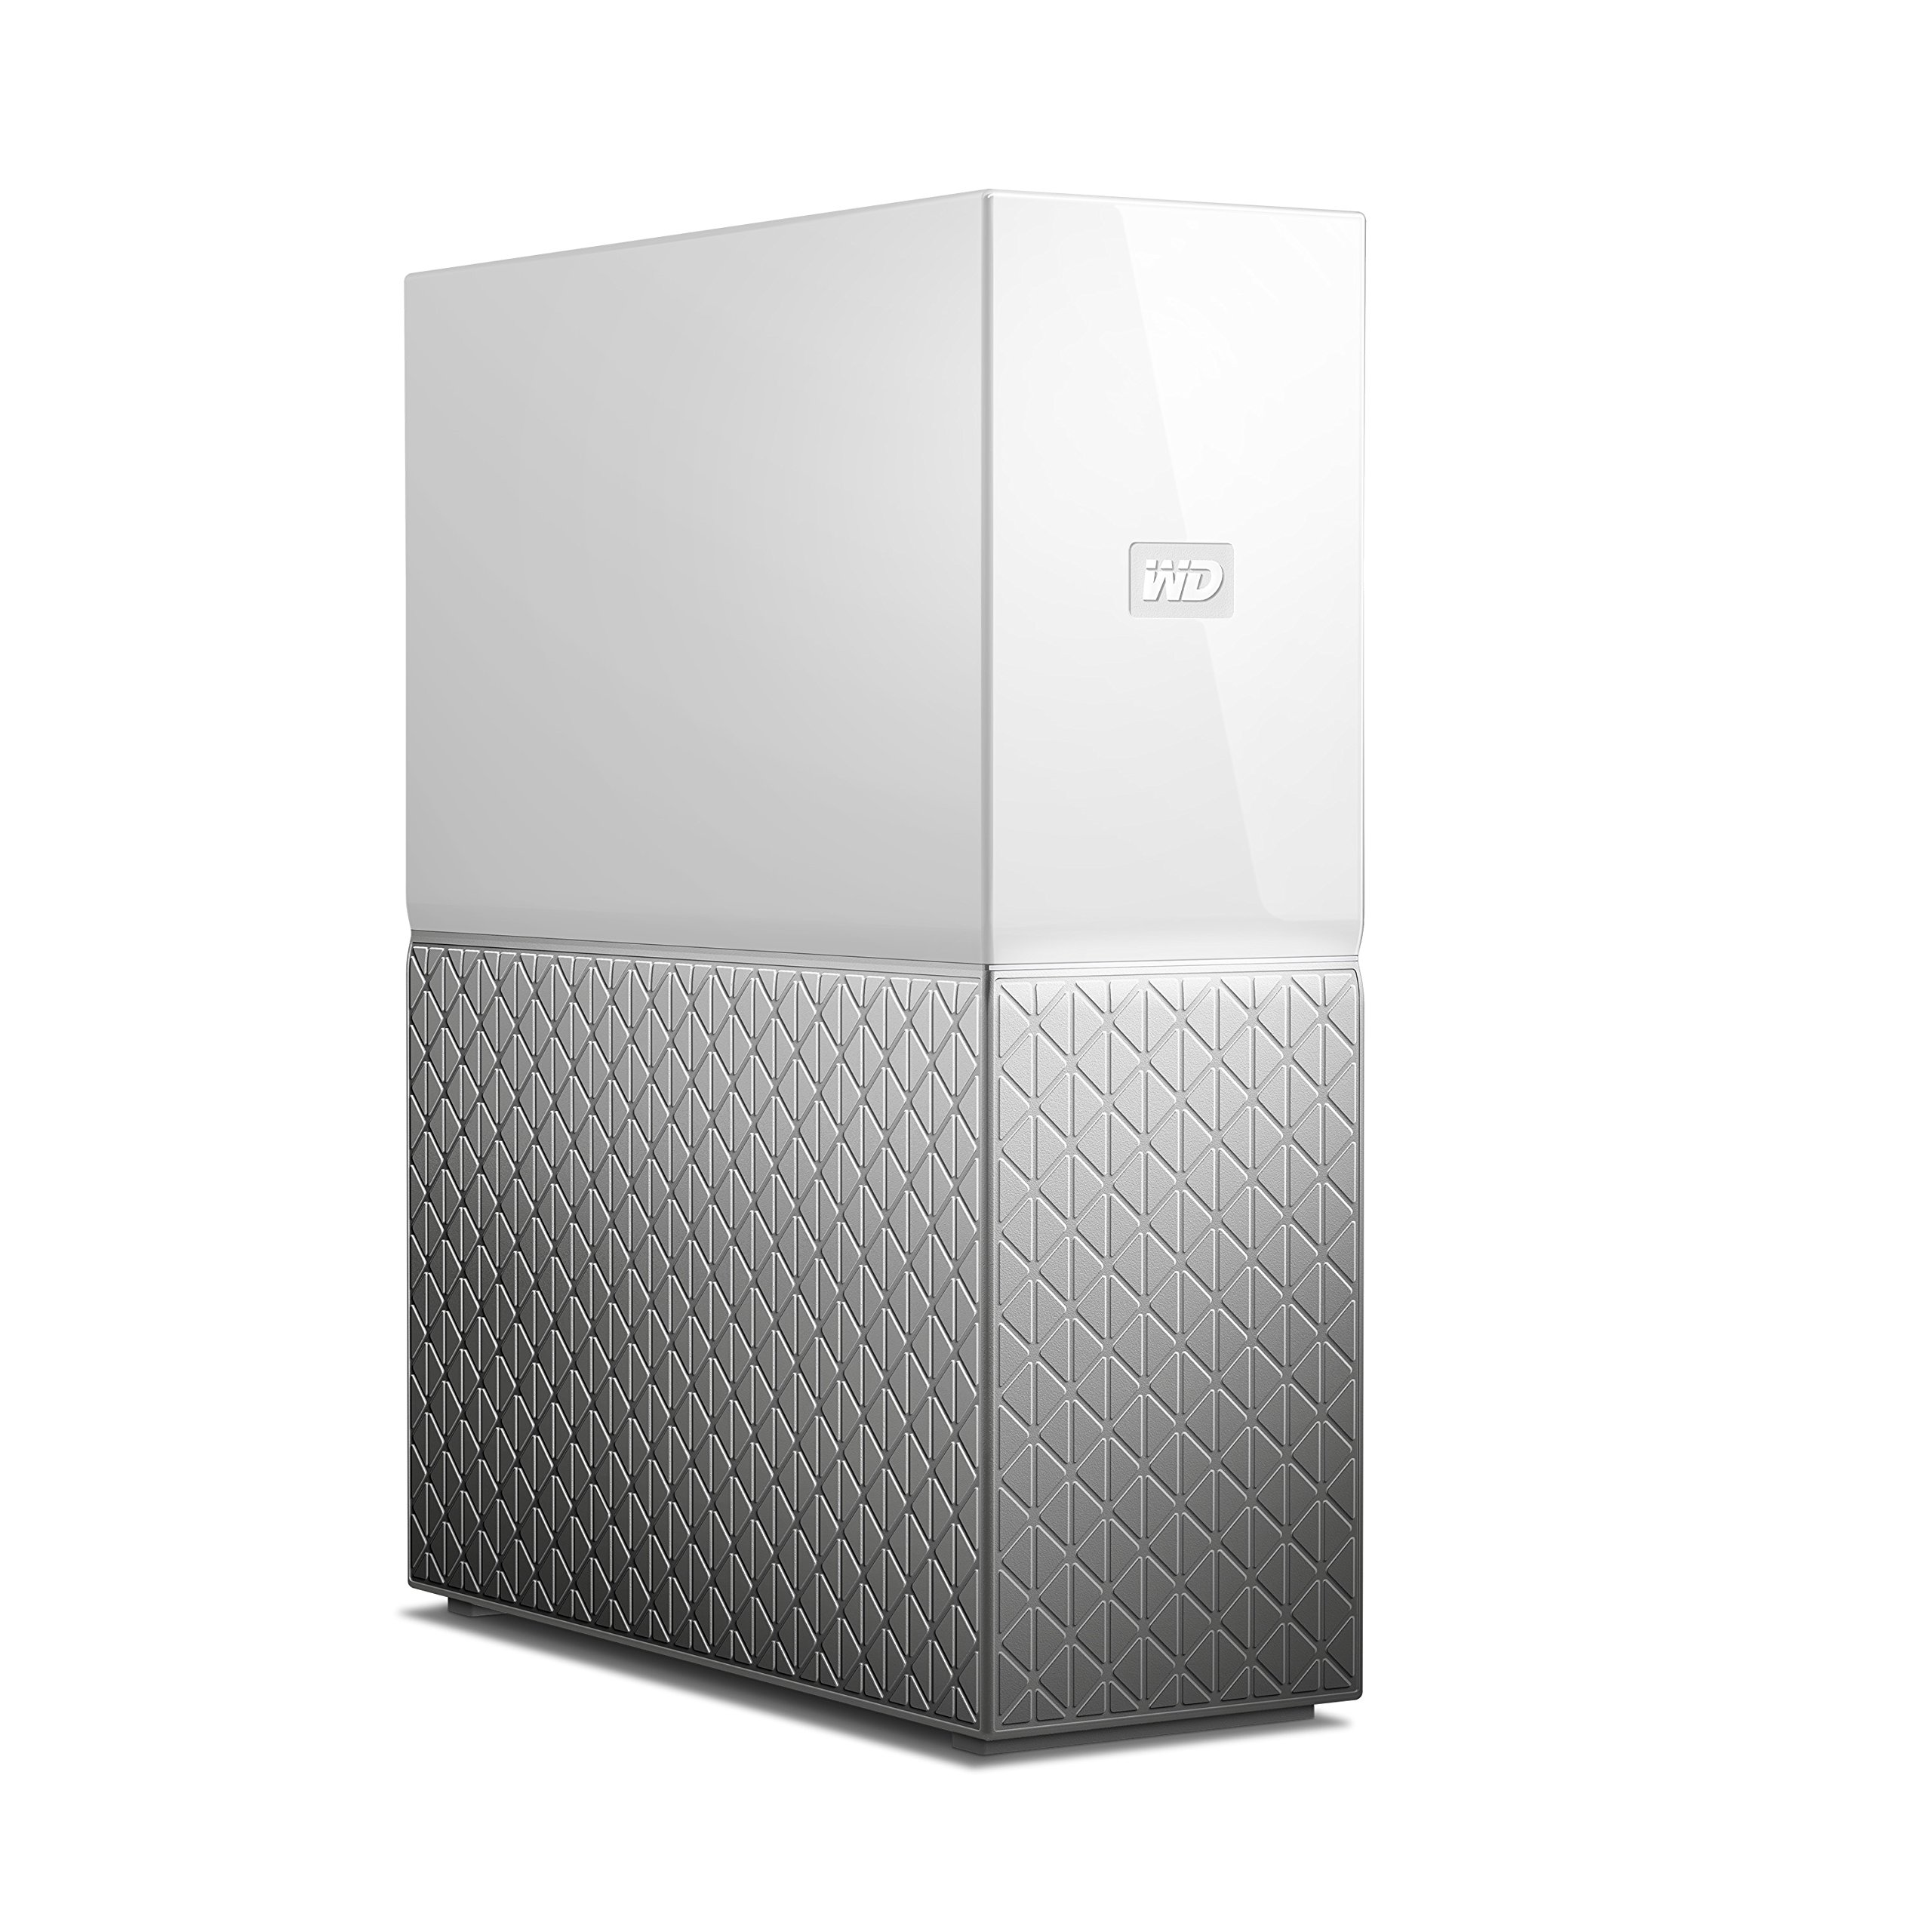 WD 8TB My Cloud Home Personal Cloud Storage - WDBVXC0080HWT-NESN by Western Digital (Image #2)